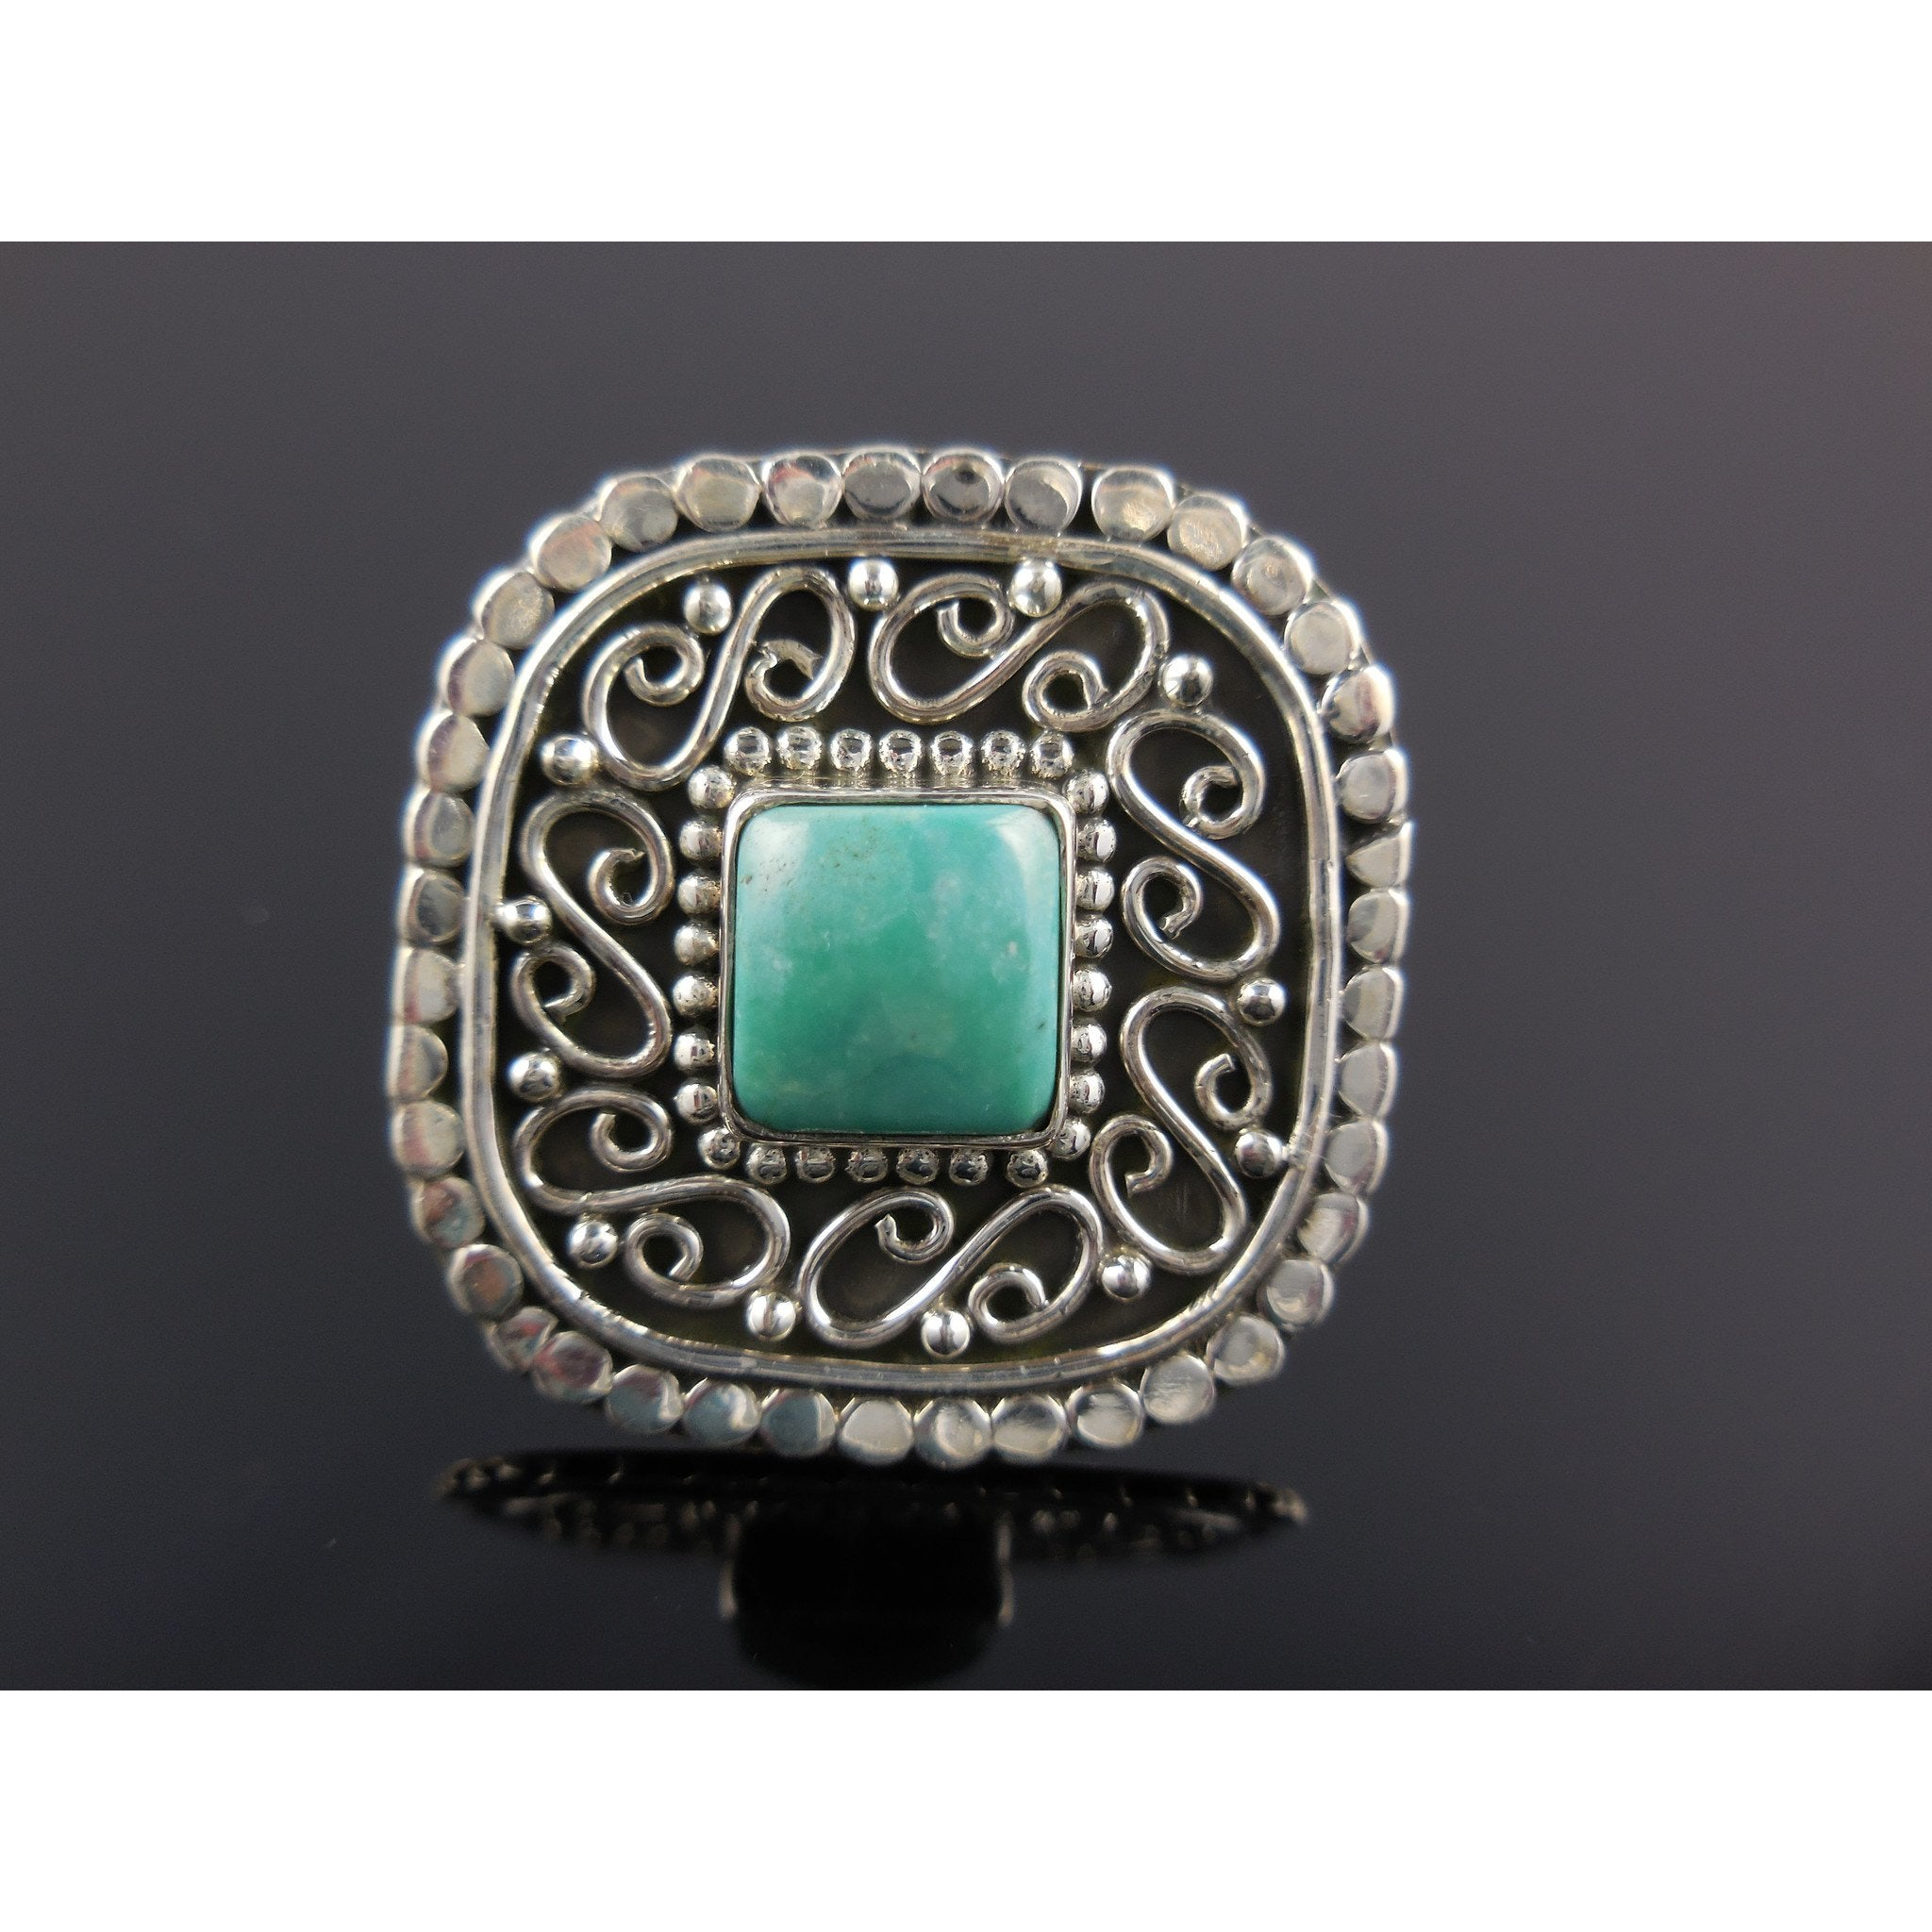 Turquoise Sterling Silver Ring - Size 5.25